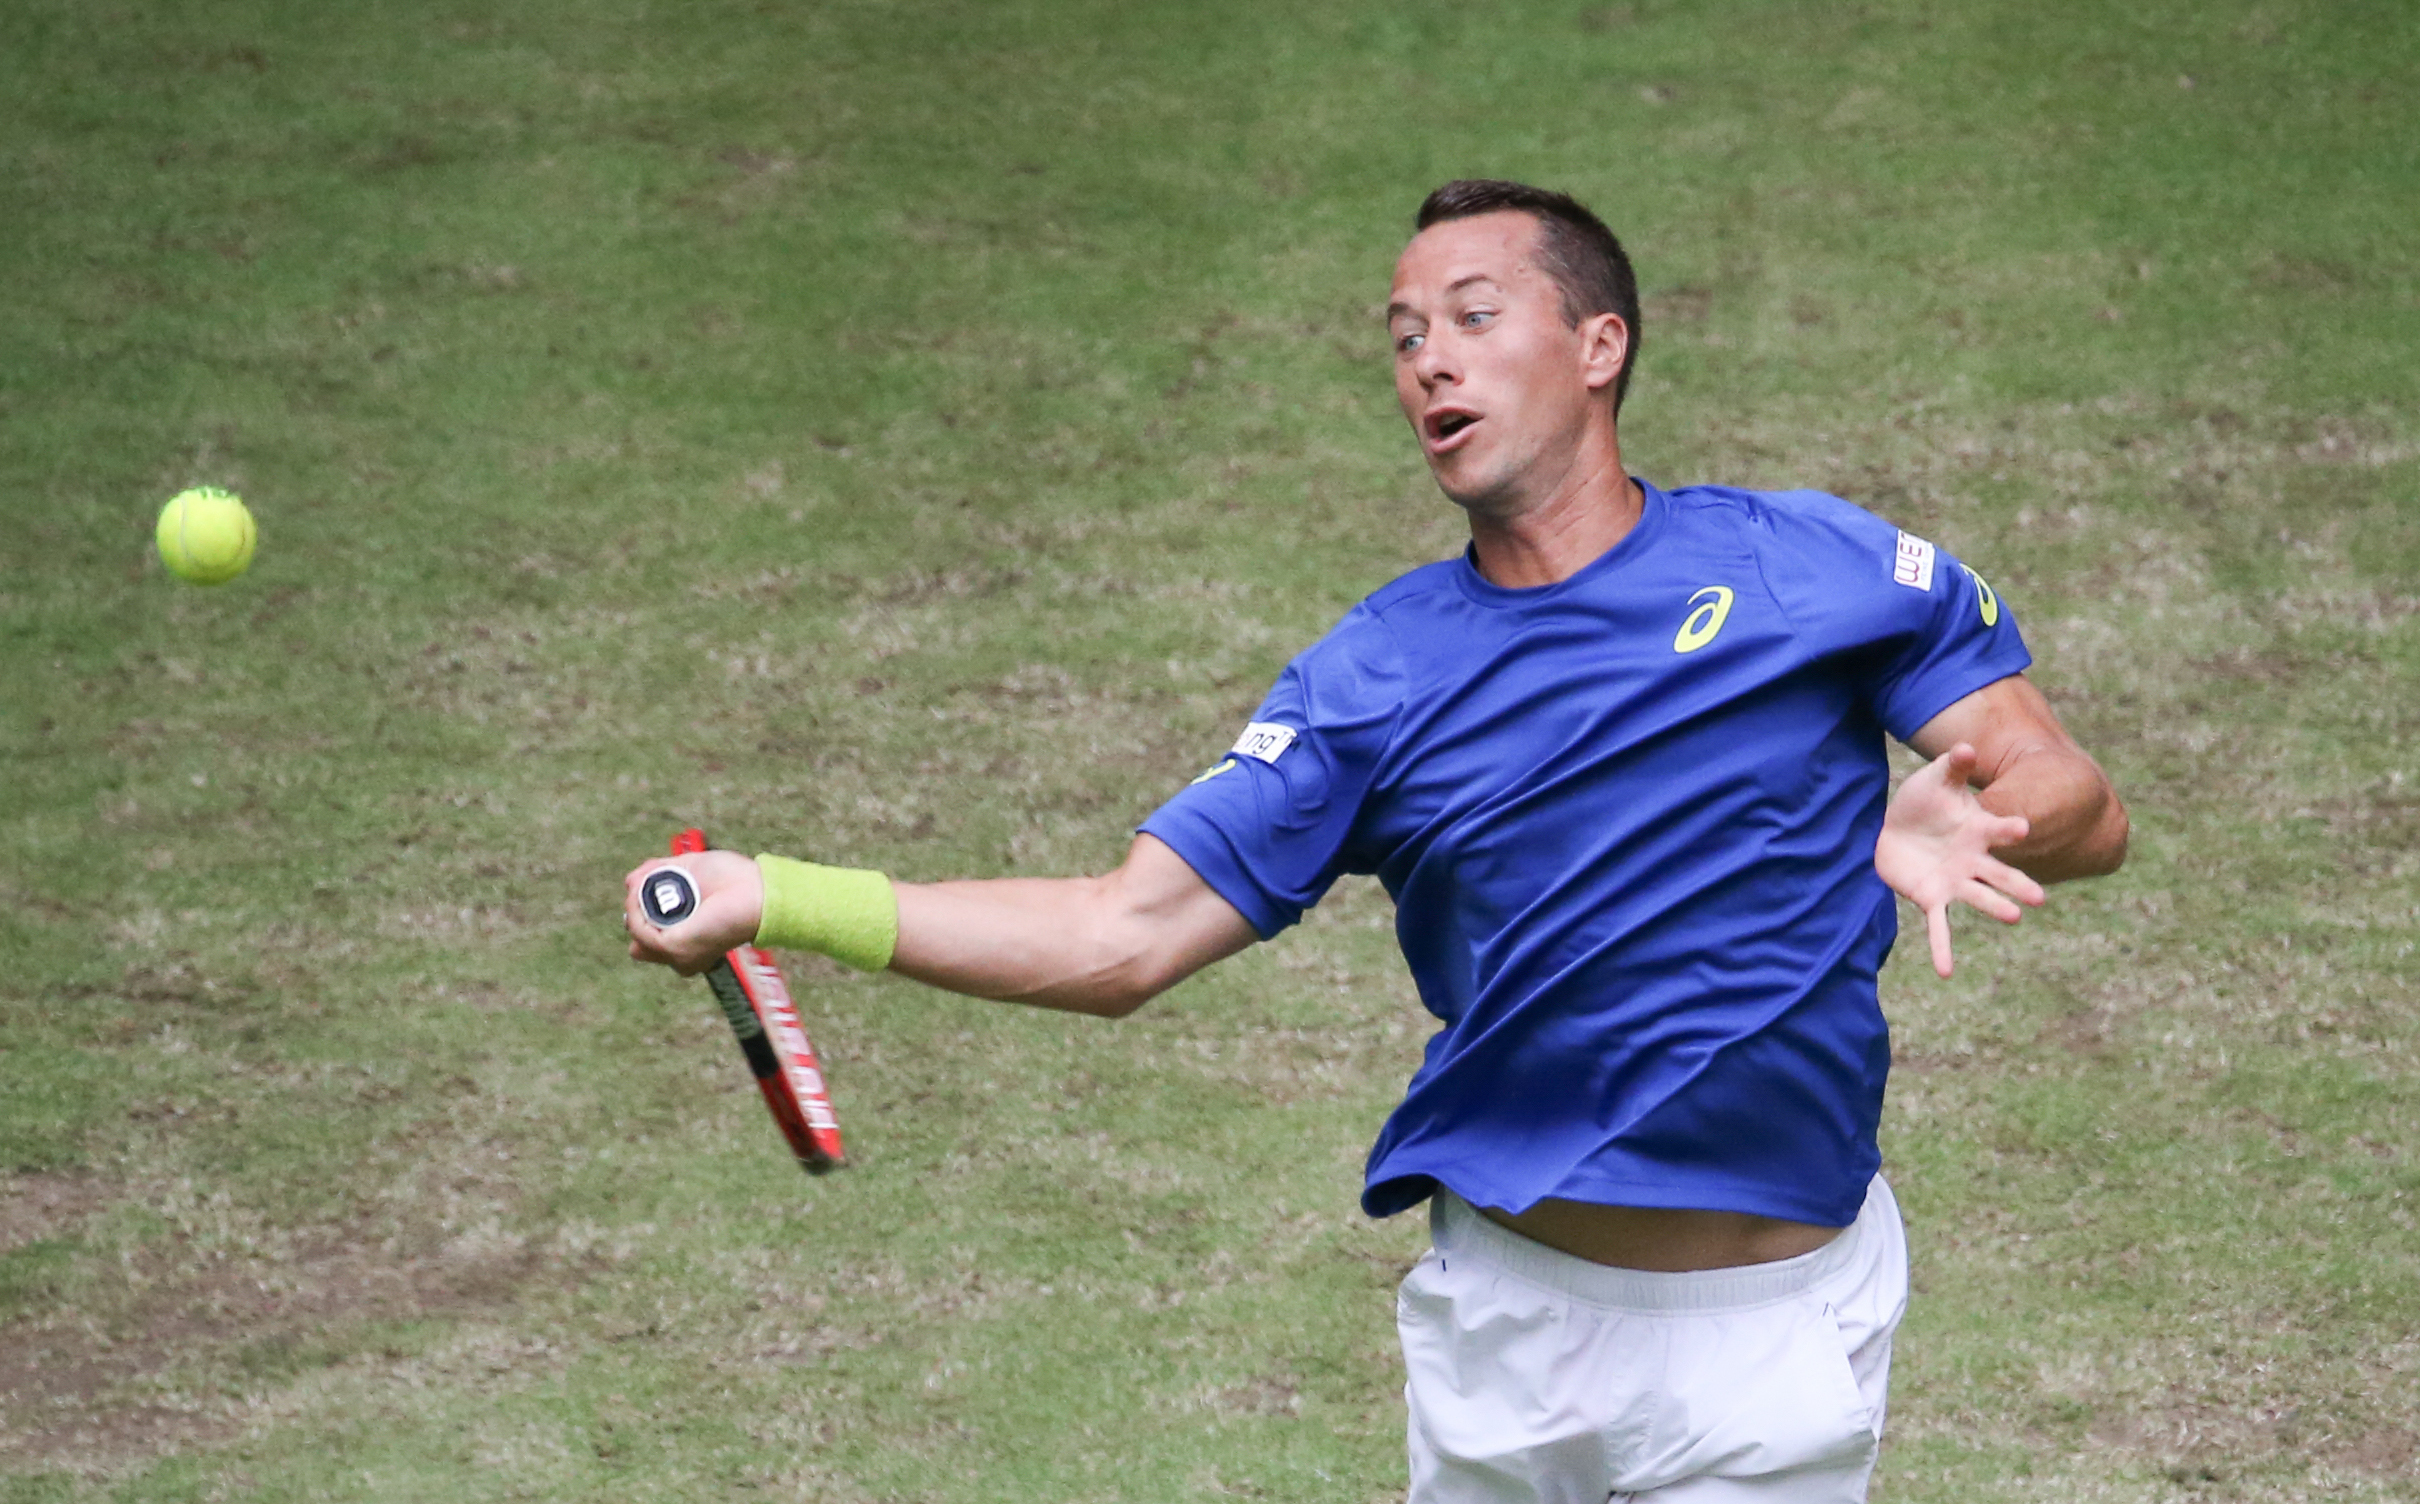 Germany's Phillip Kohlschreiber  returns  a ball to Spain's Marcel Granollers, at the Gerry Weber Open ATP tennis tournament in Halle, Germany,  Wednesday June 15, 2016. ( Friso Gentsch/dpa via AP)